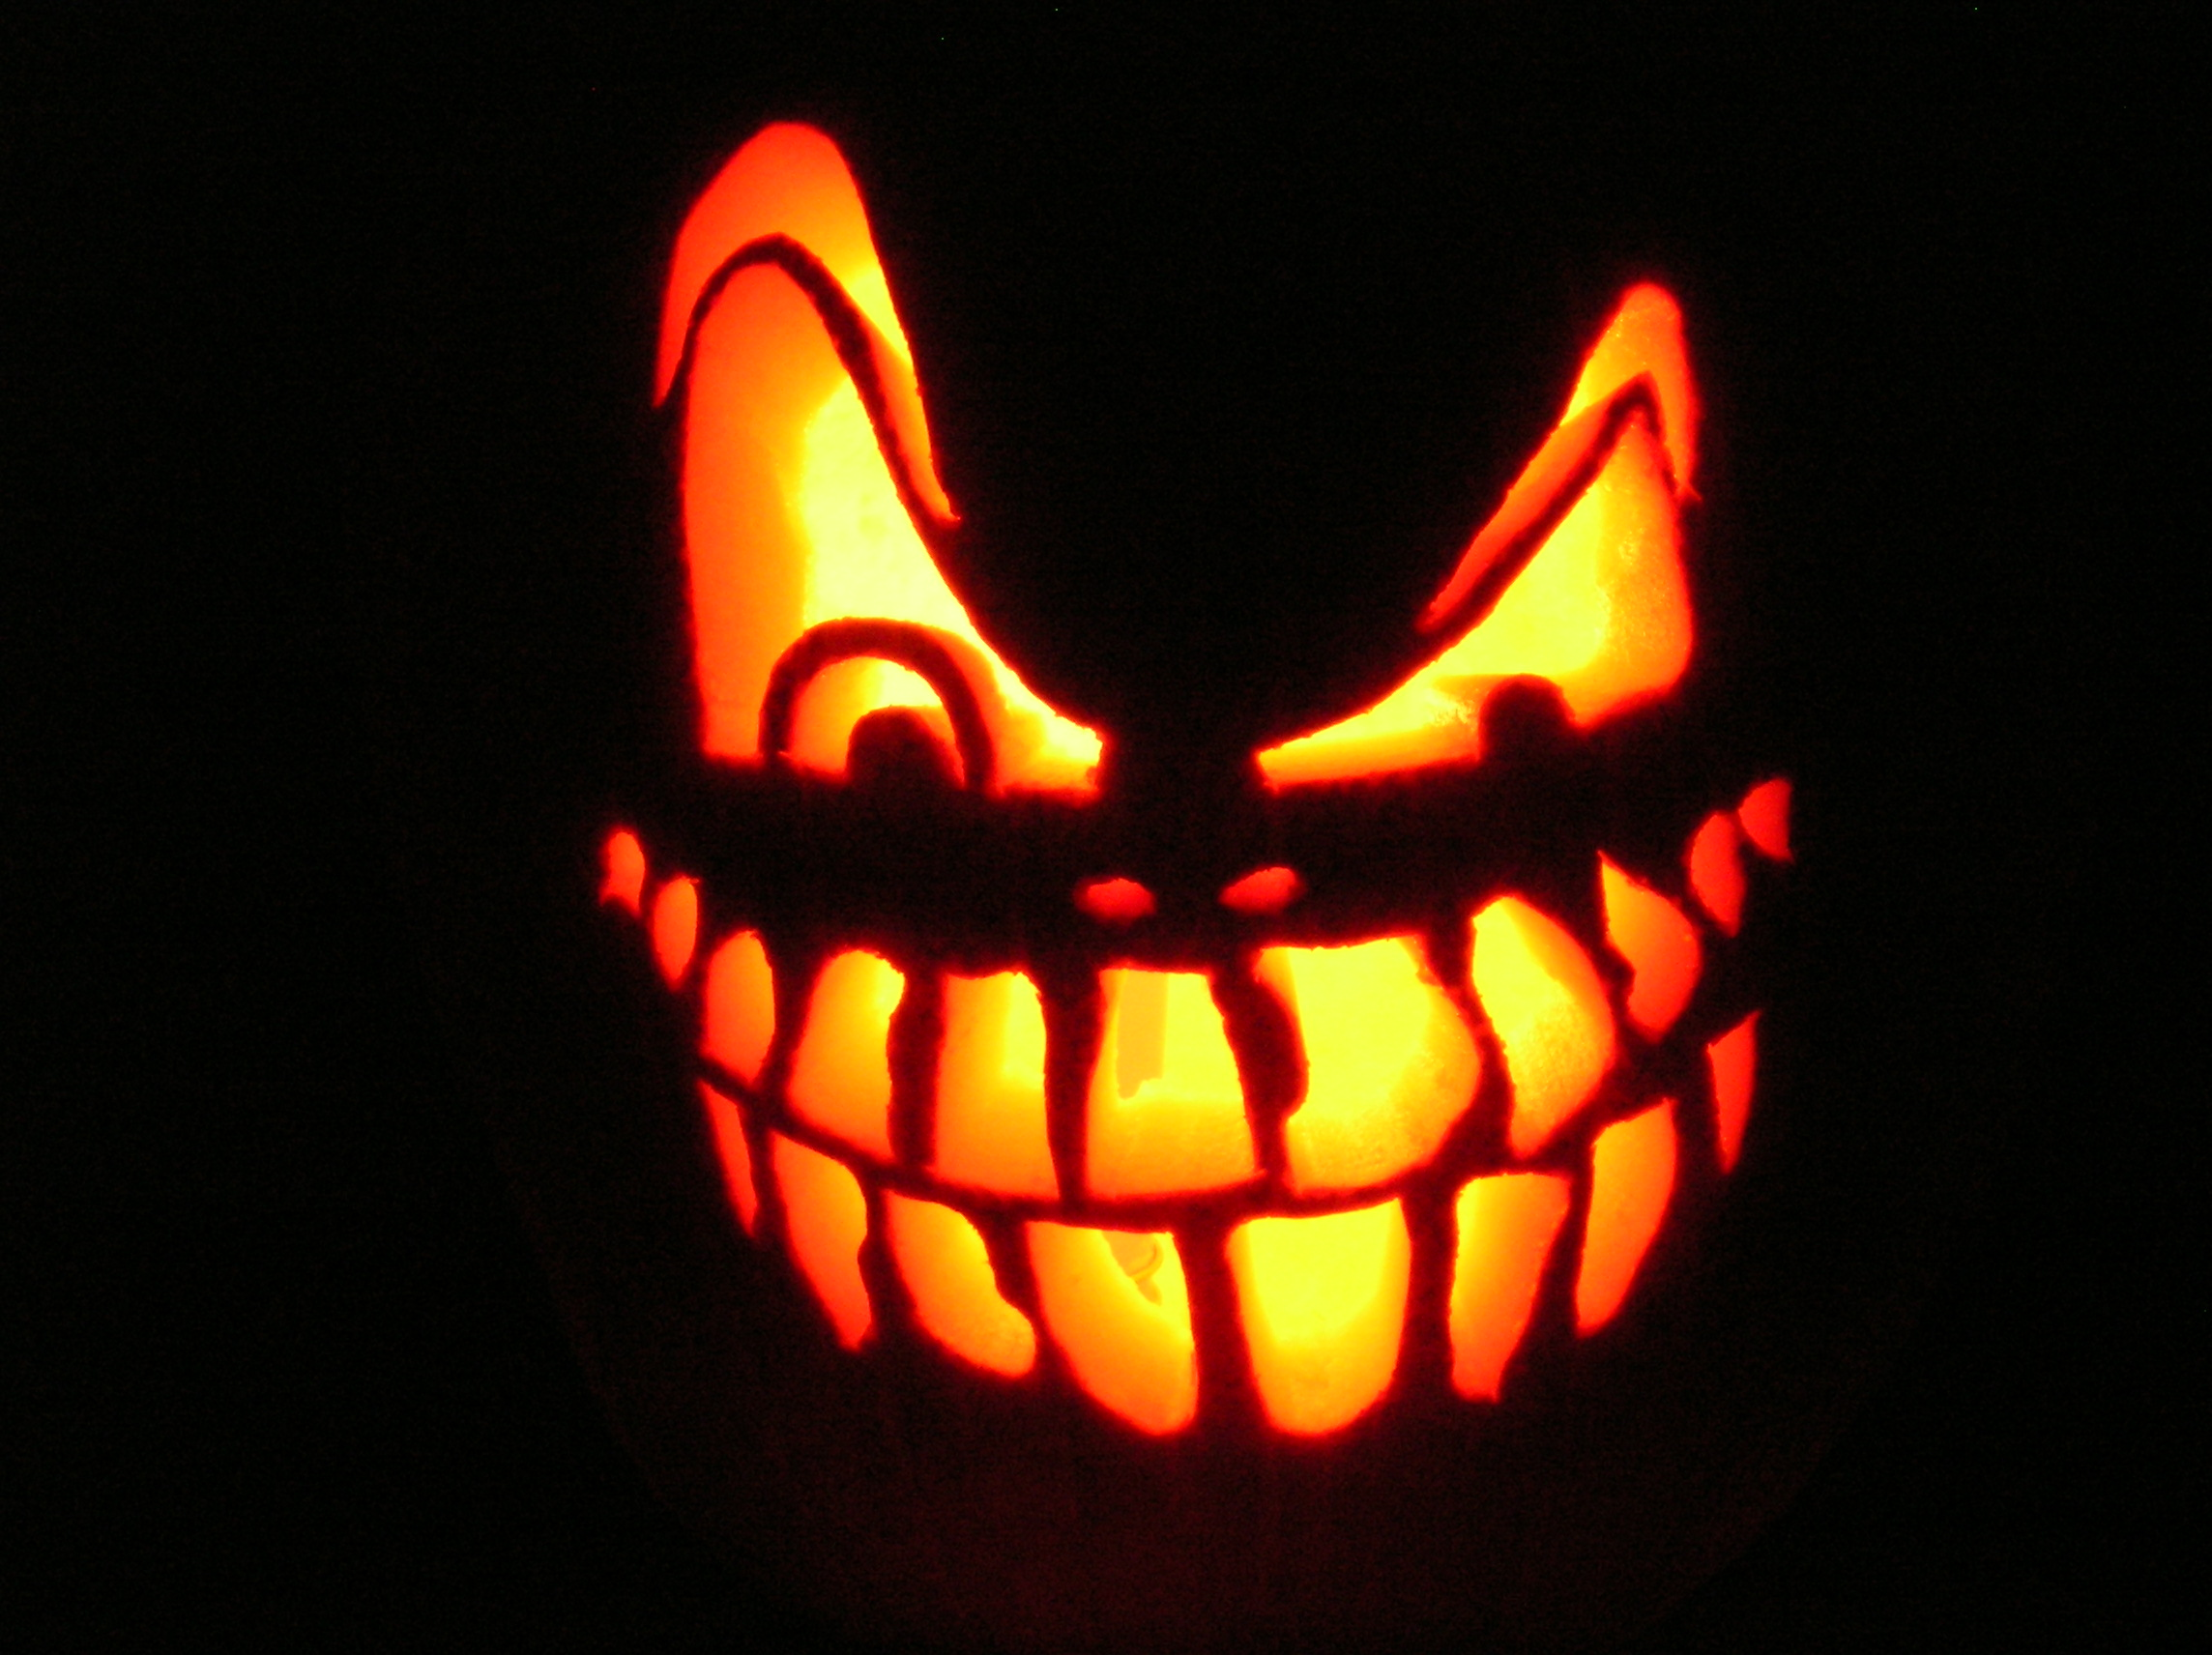 http://upload.wikimedia.org/wikipedia/commons/8/84/Happy_Halloween!.jpg